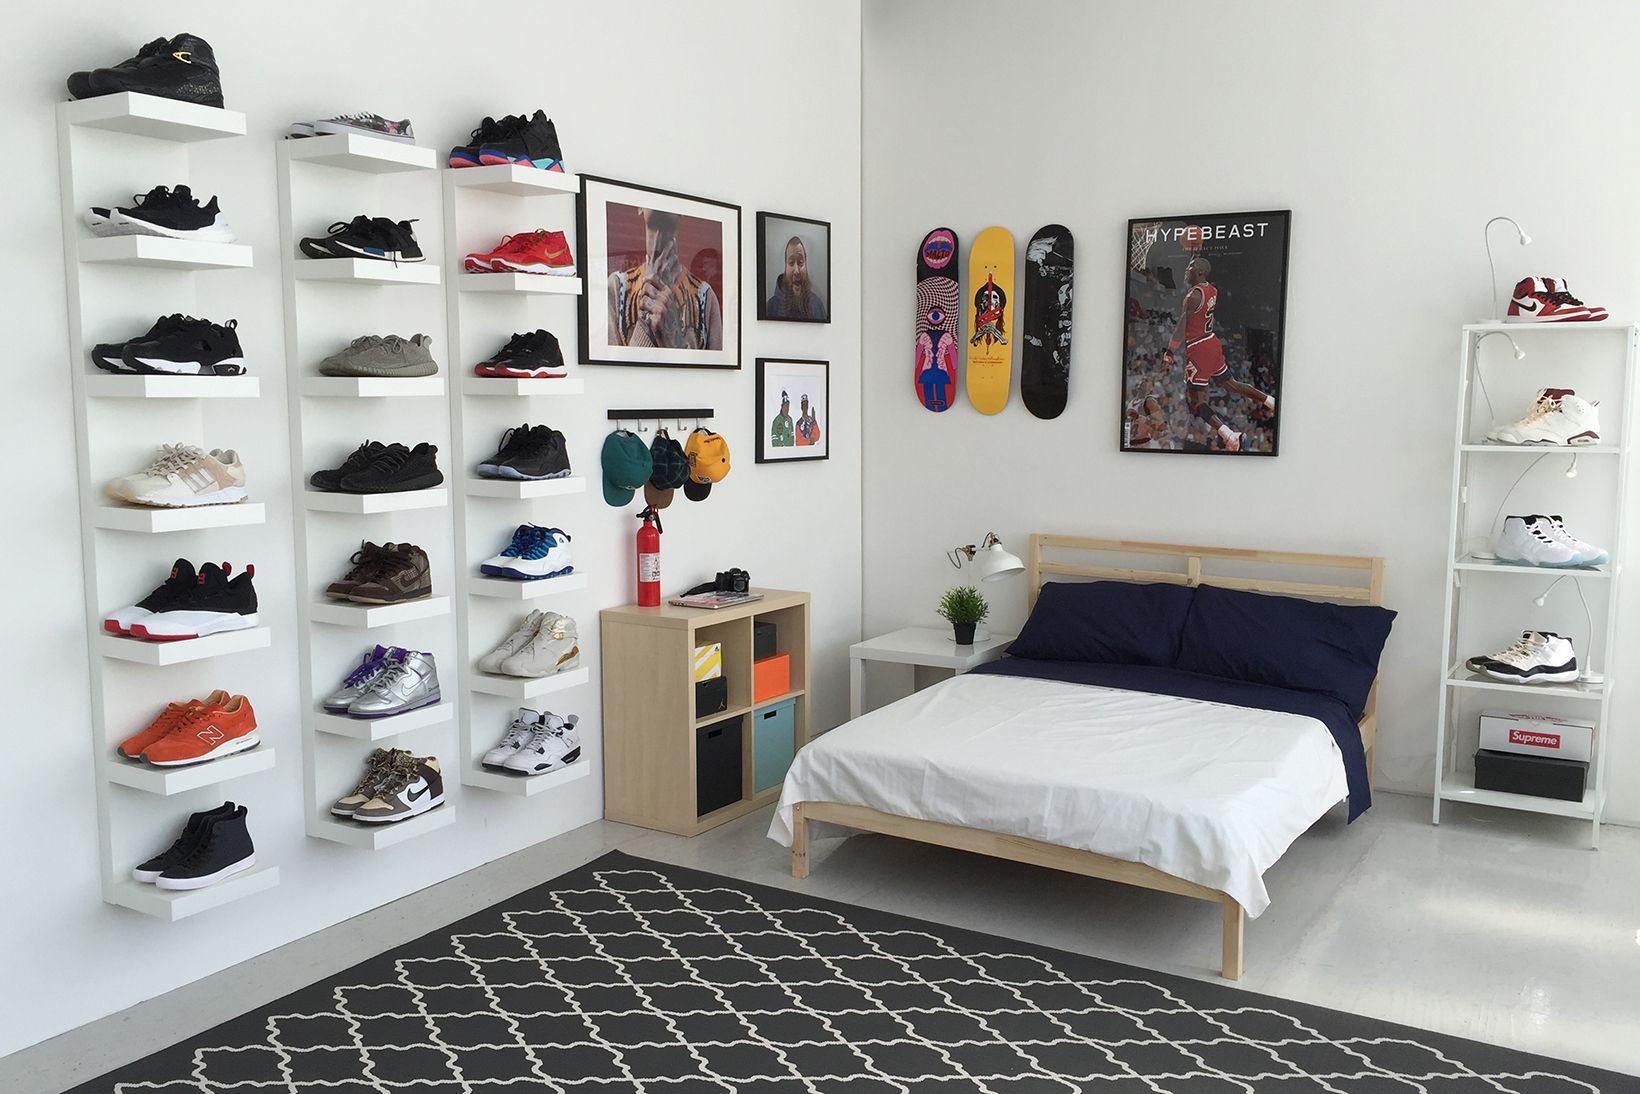 Uberlegen IKEA® And HYPEBEAST Design The Ideal Sneakerhead Bedroom